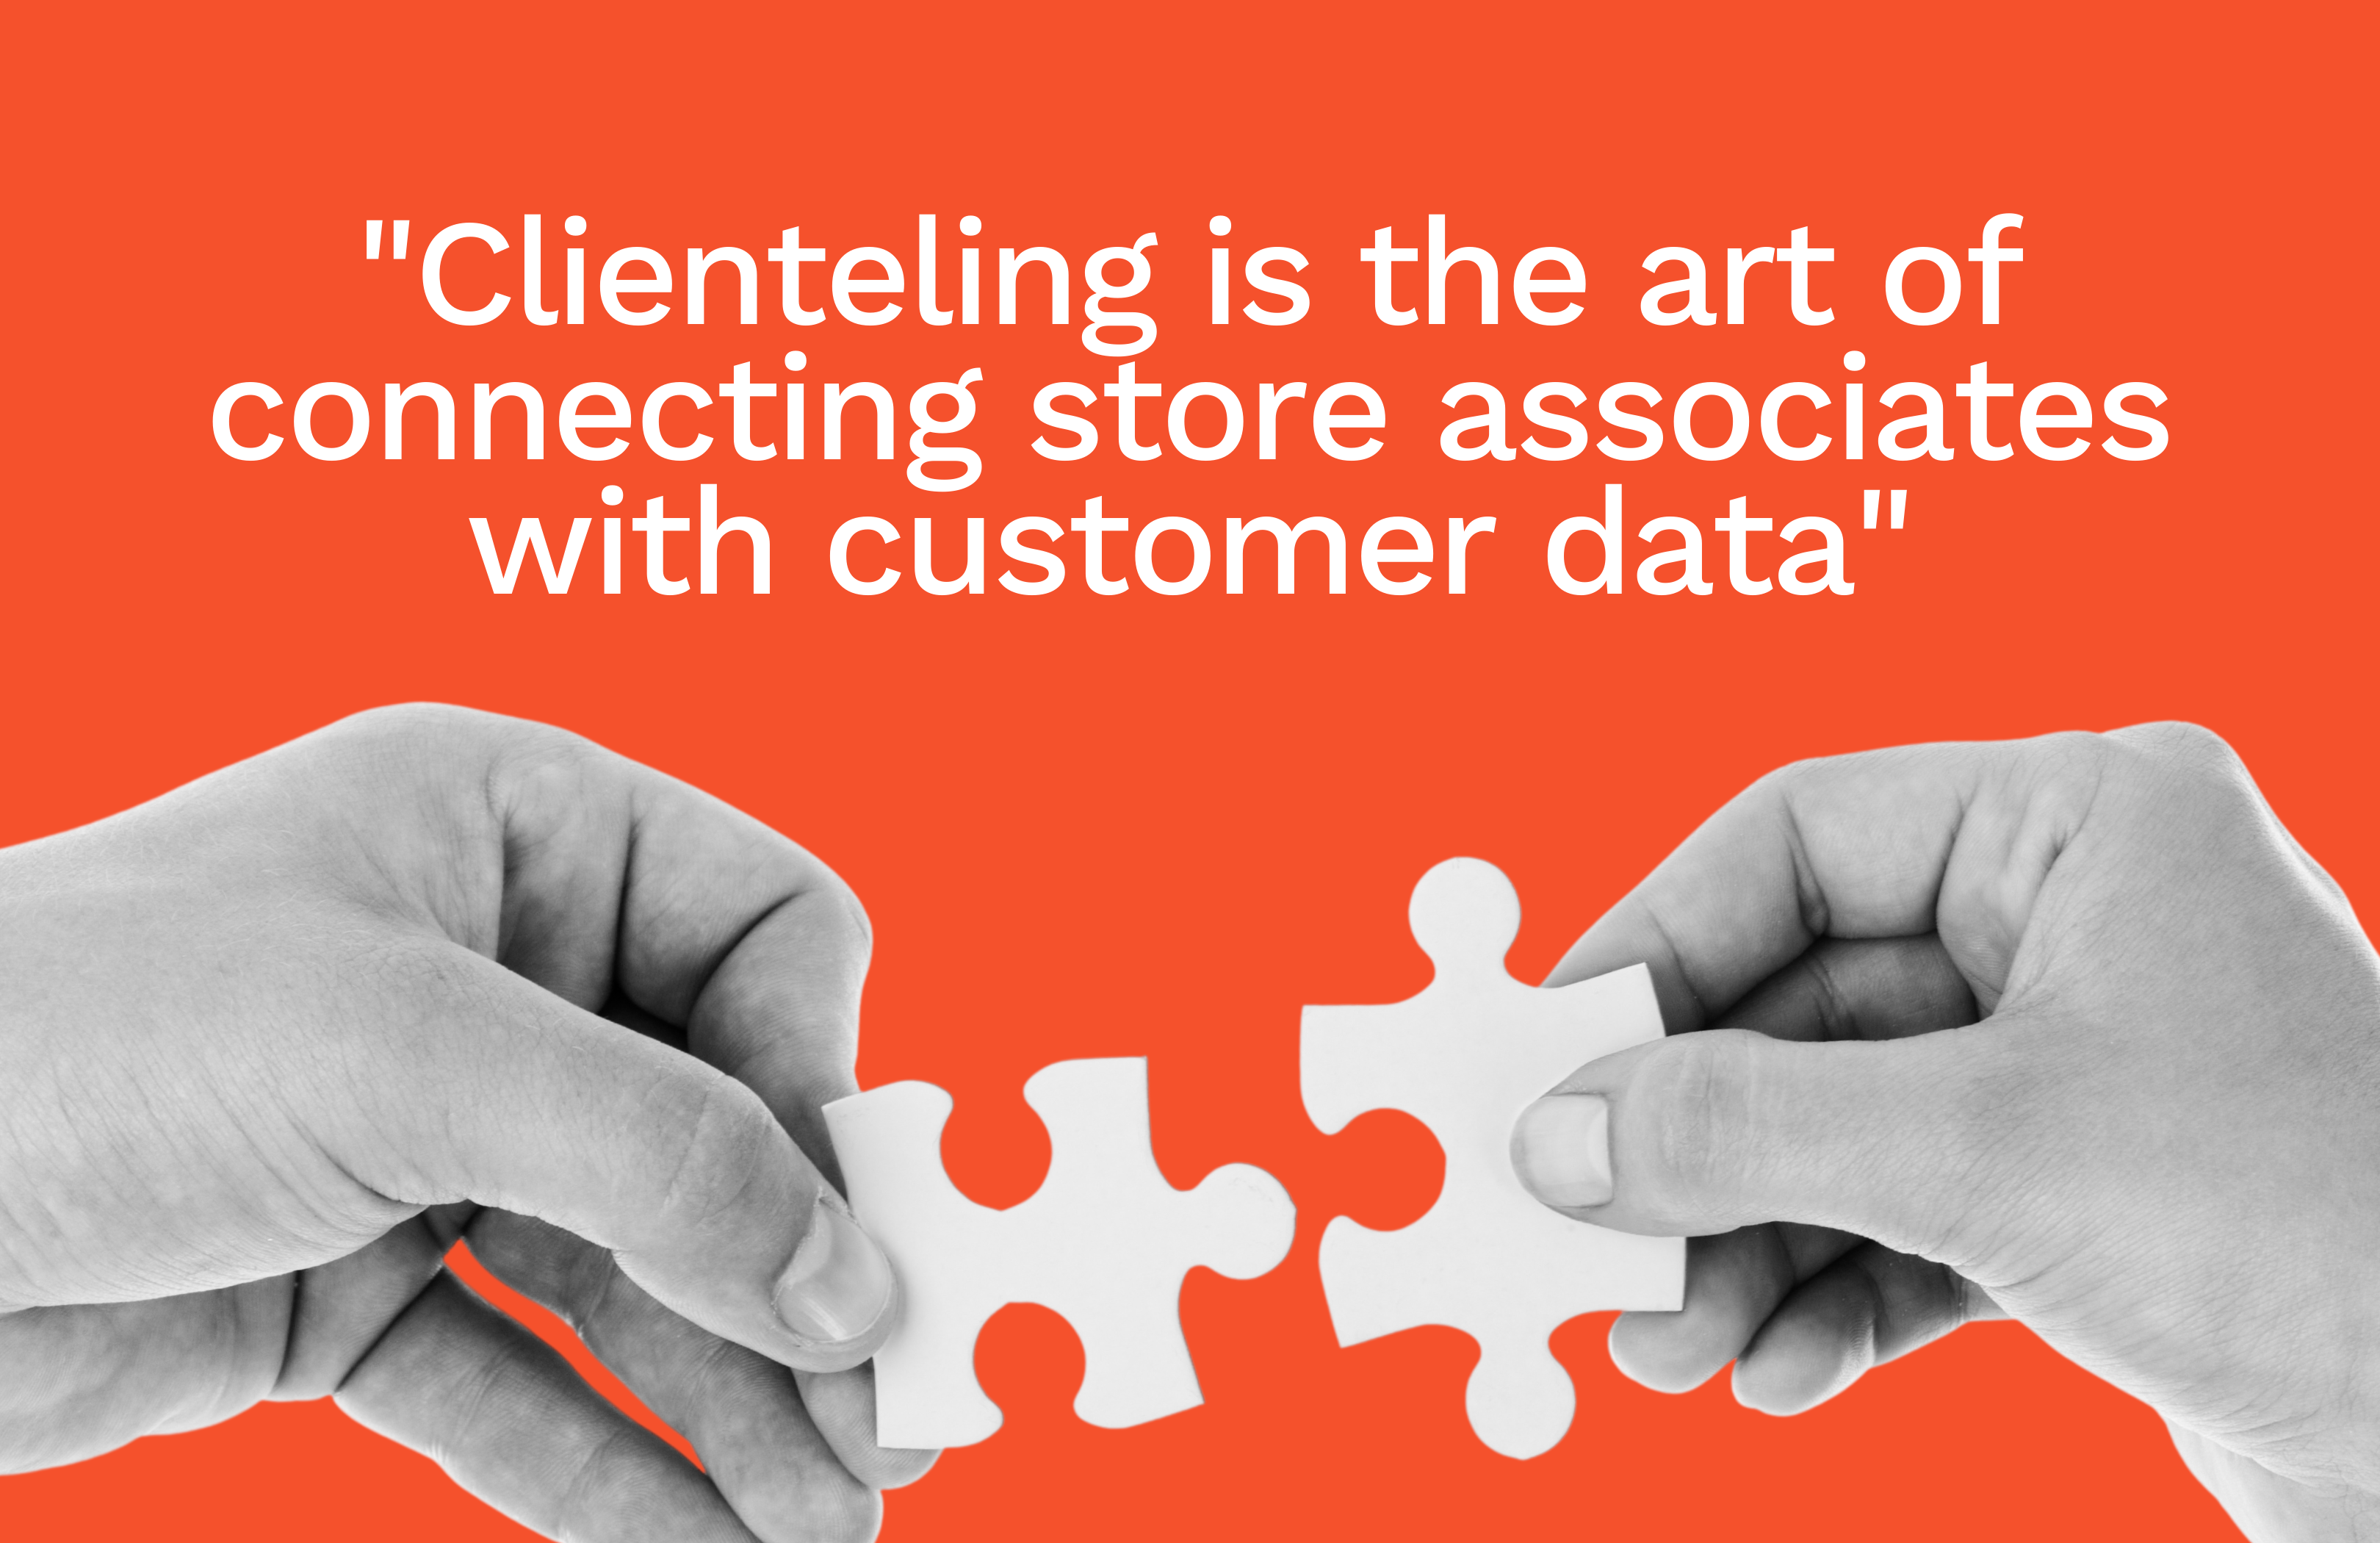 clienteling is the art of connecting store associates with customer data